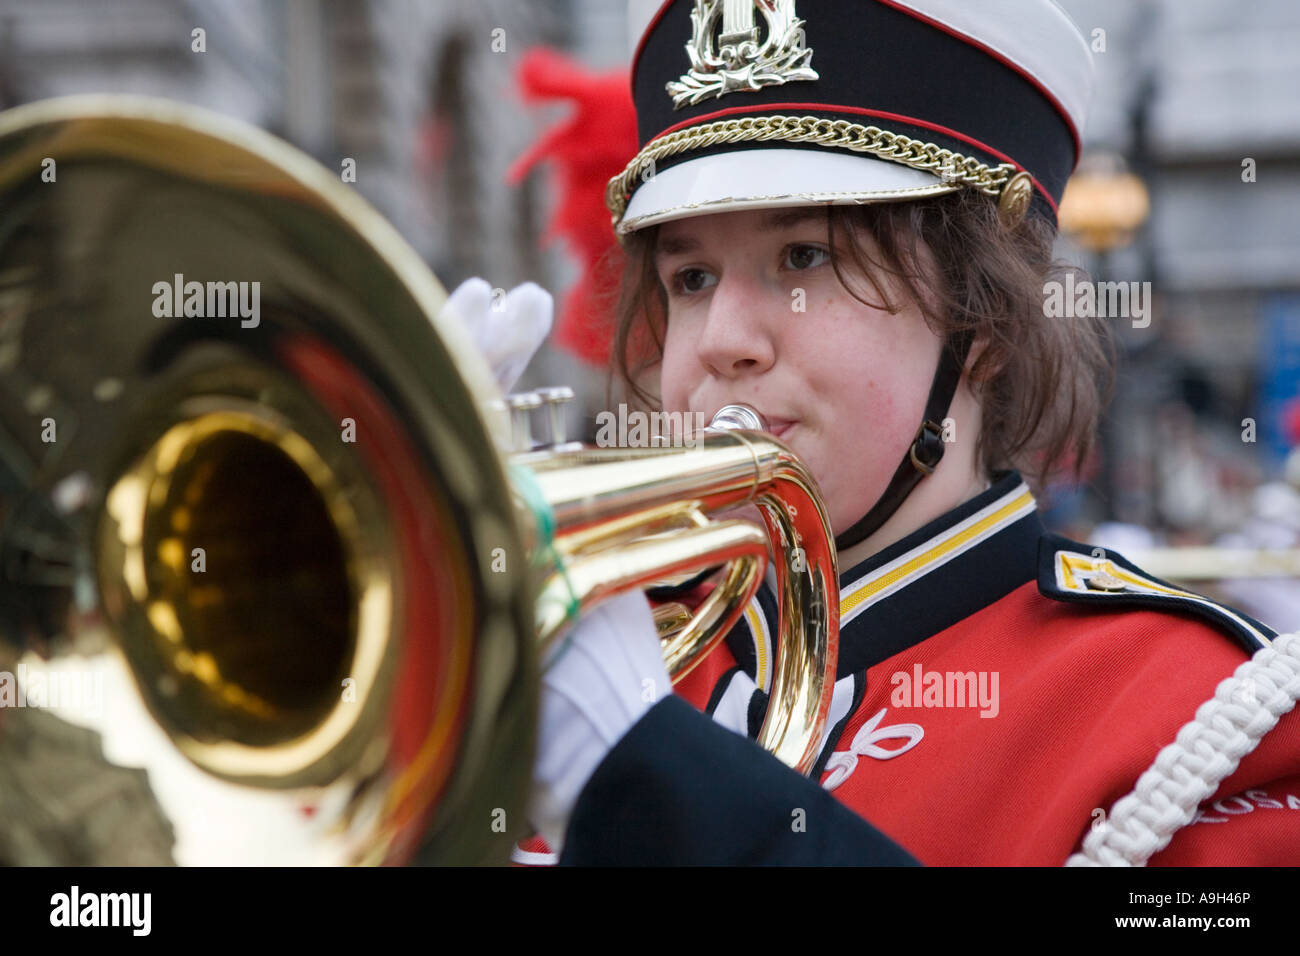 Member of a High School Marching Band performing at the London New Year's Day Parade 2007 - Stock Image